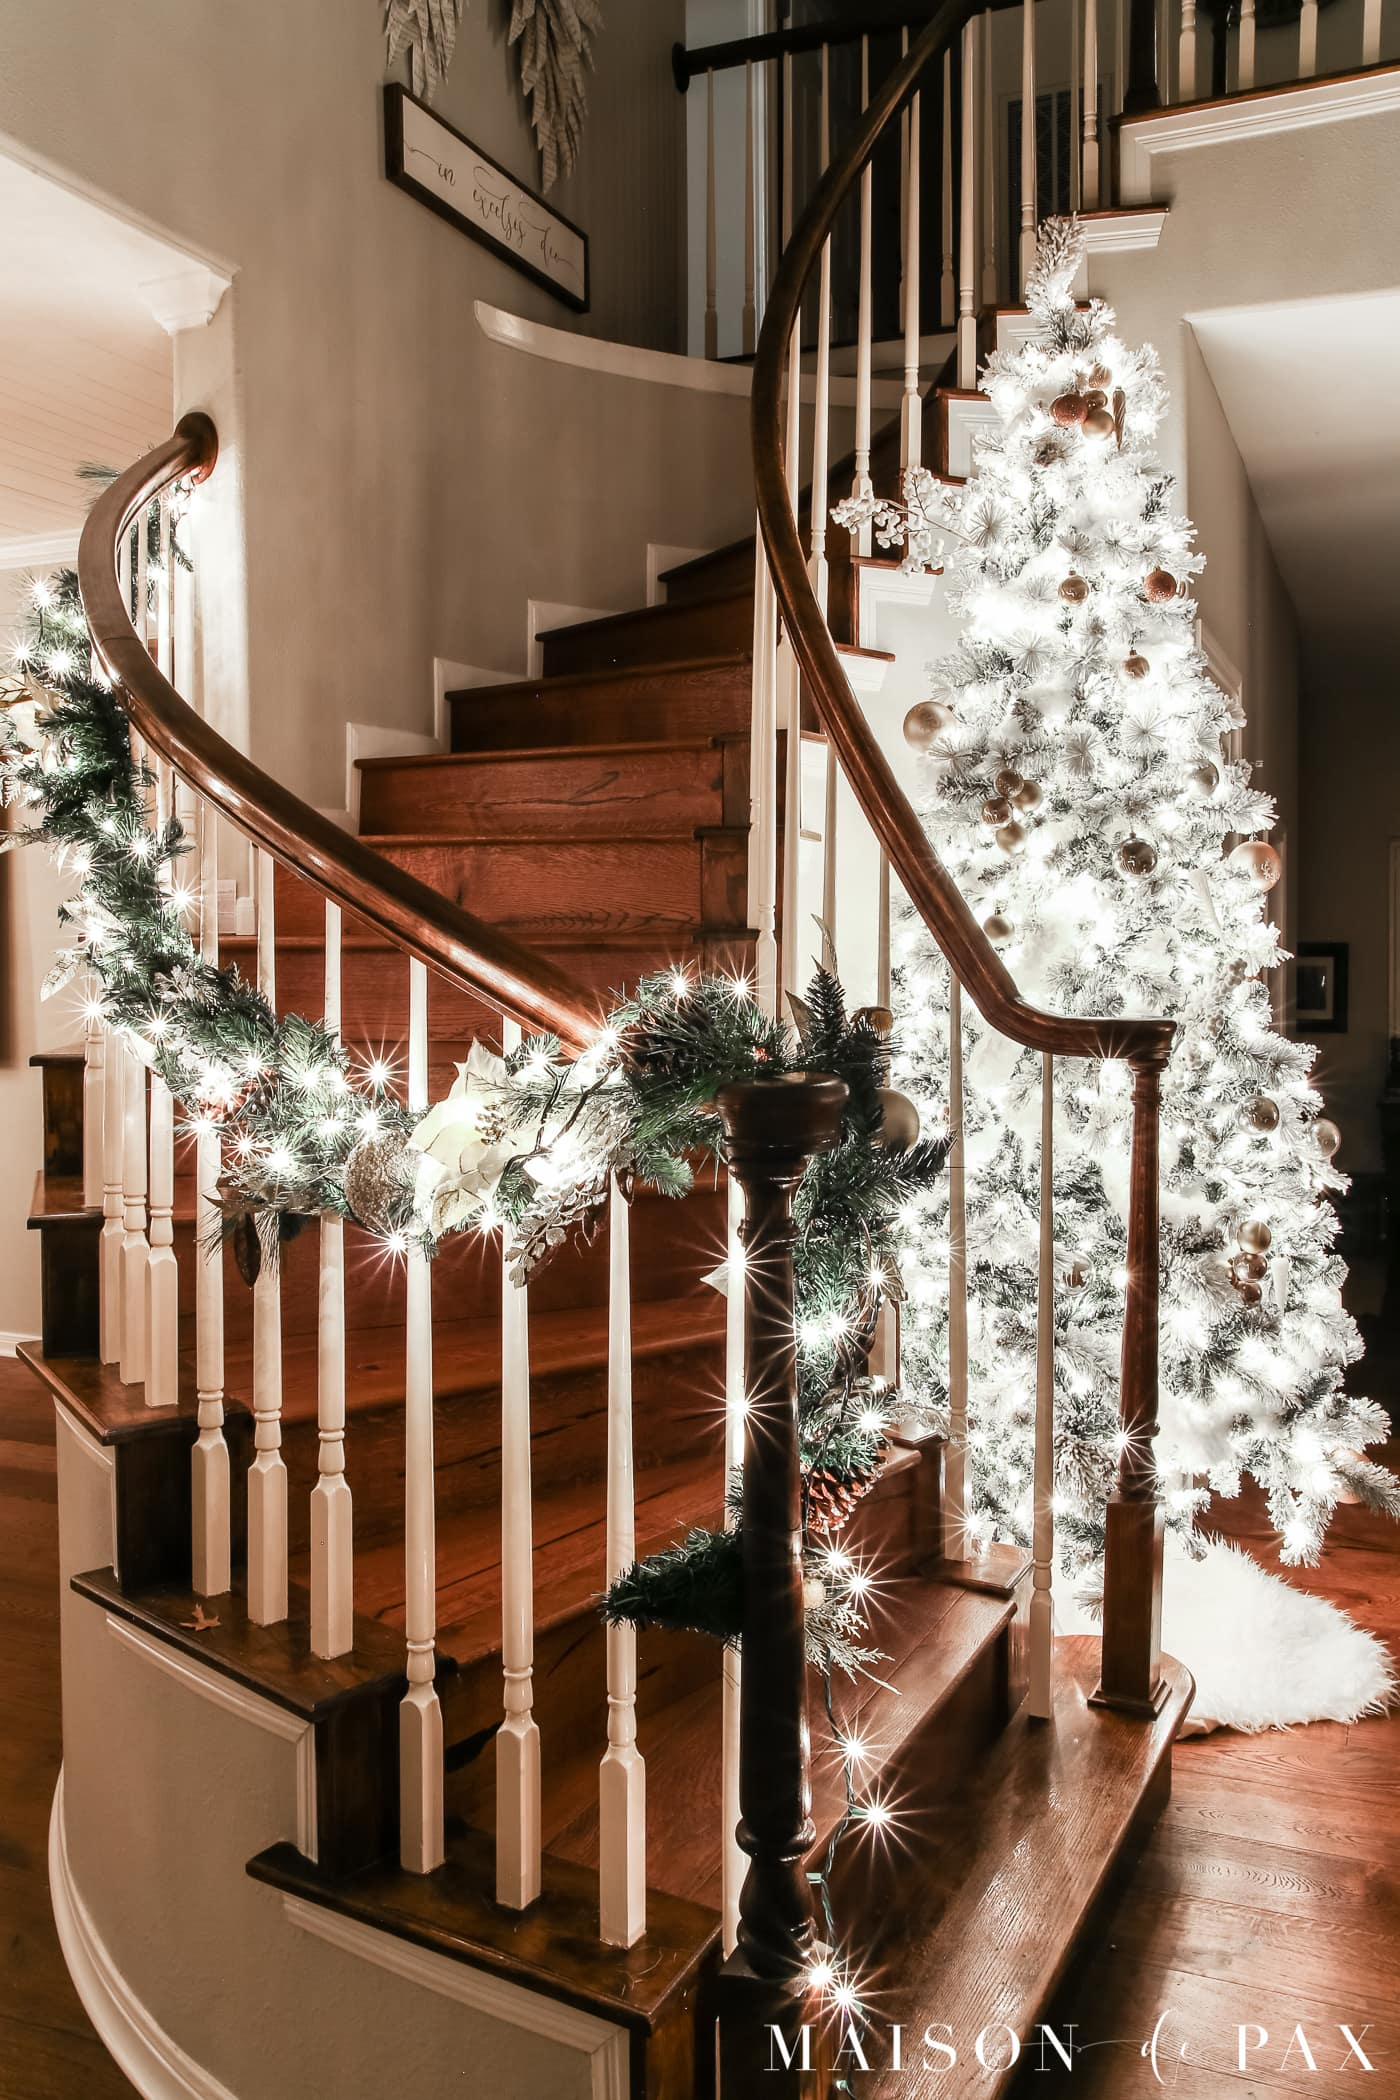 tall tree and wrap around spiral staircase: gorgeous Christmas lights at night in these 25+ home tours #christmasnightstour #holidayhometour #christmaslights